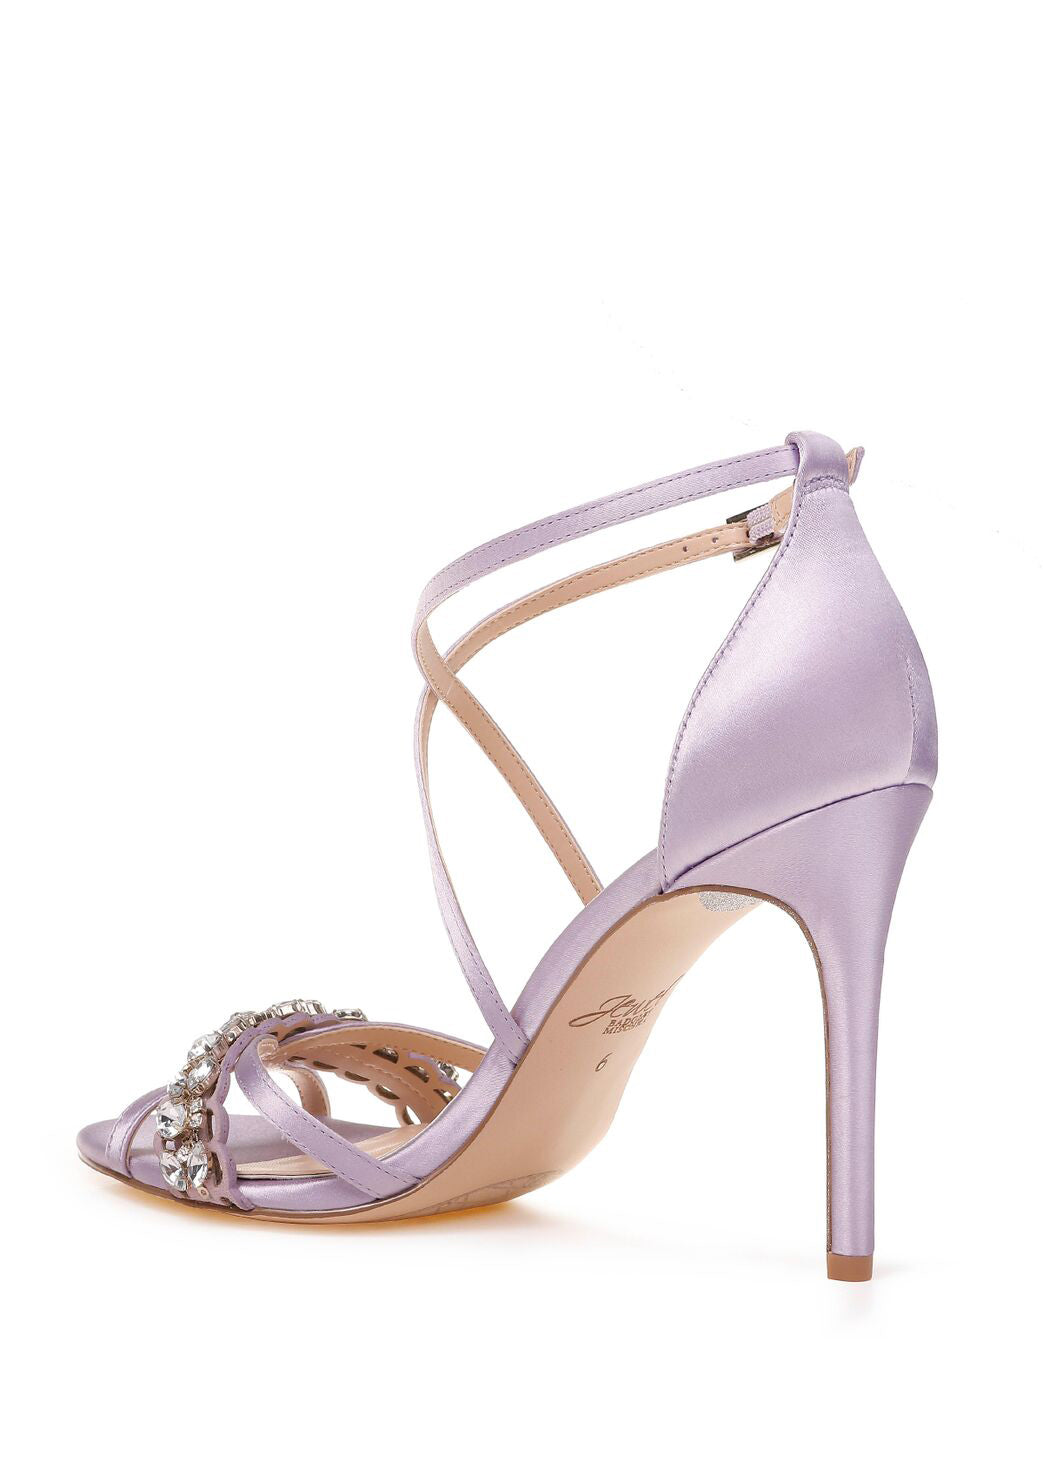 Gisele, Shoes, Badgley Mischka - Eternal Bridal